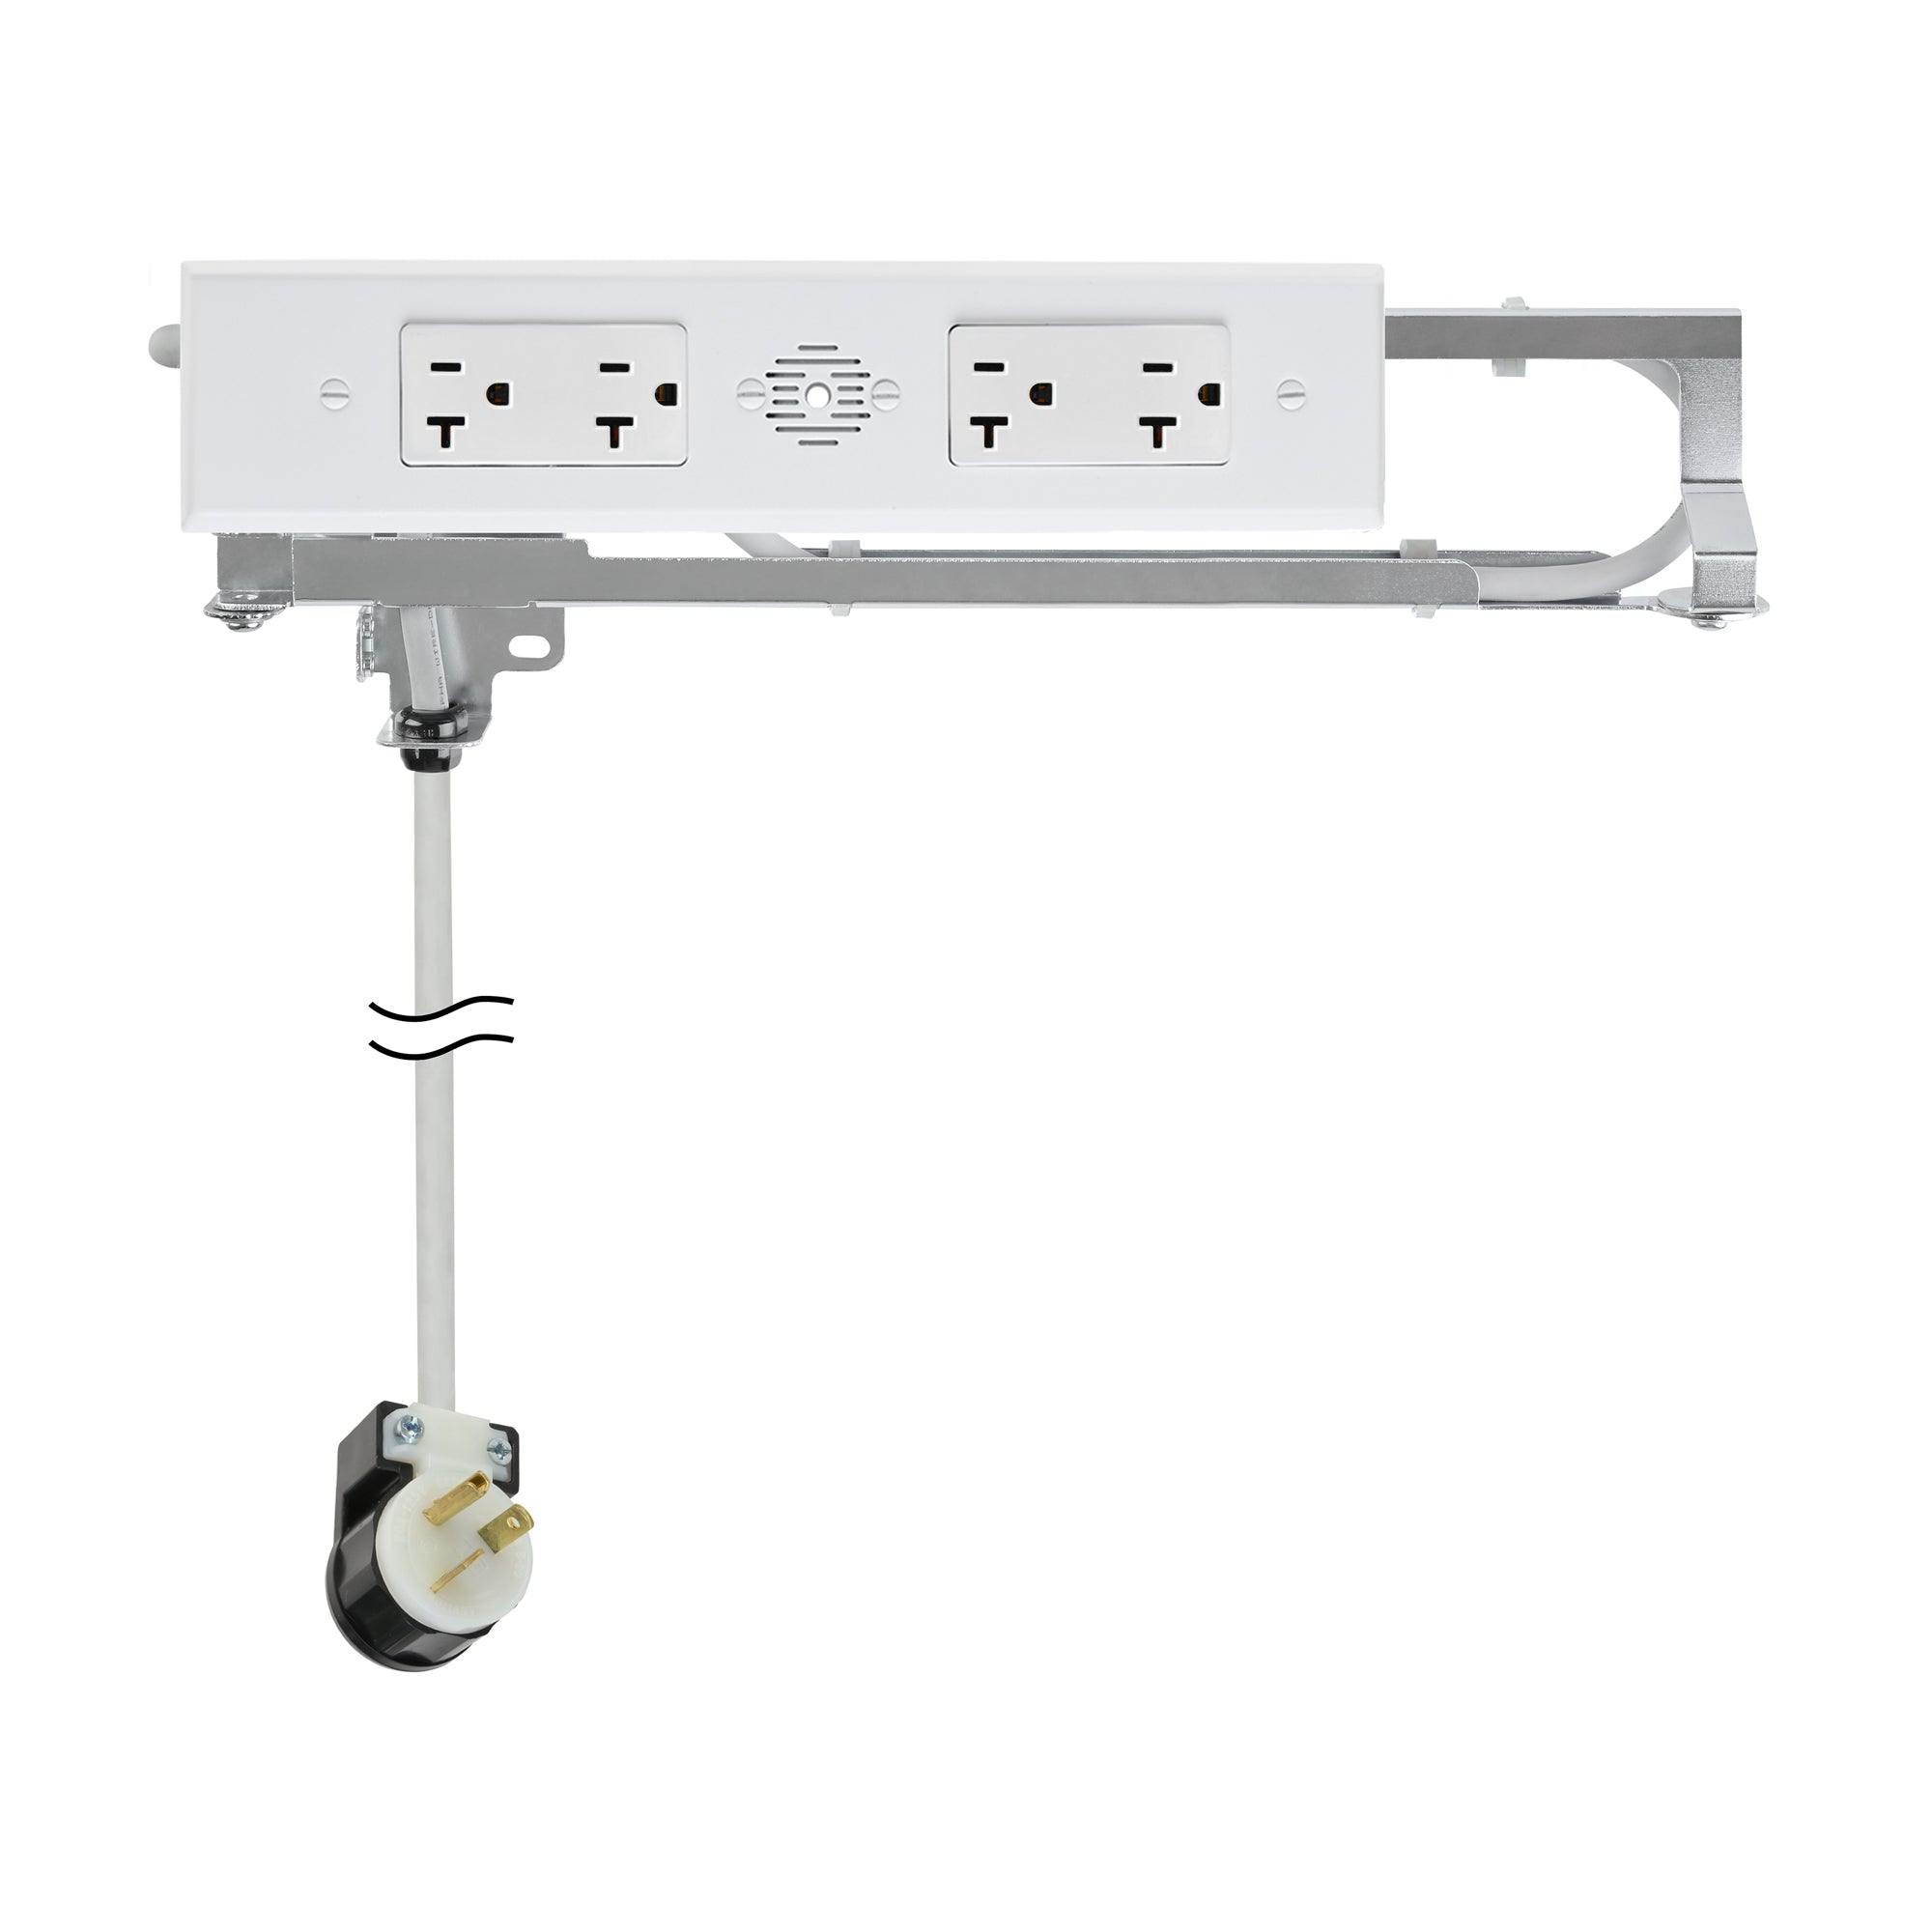 20 amp Blade Series Deep Cabinet Outlets